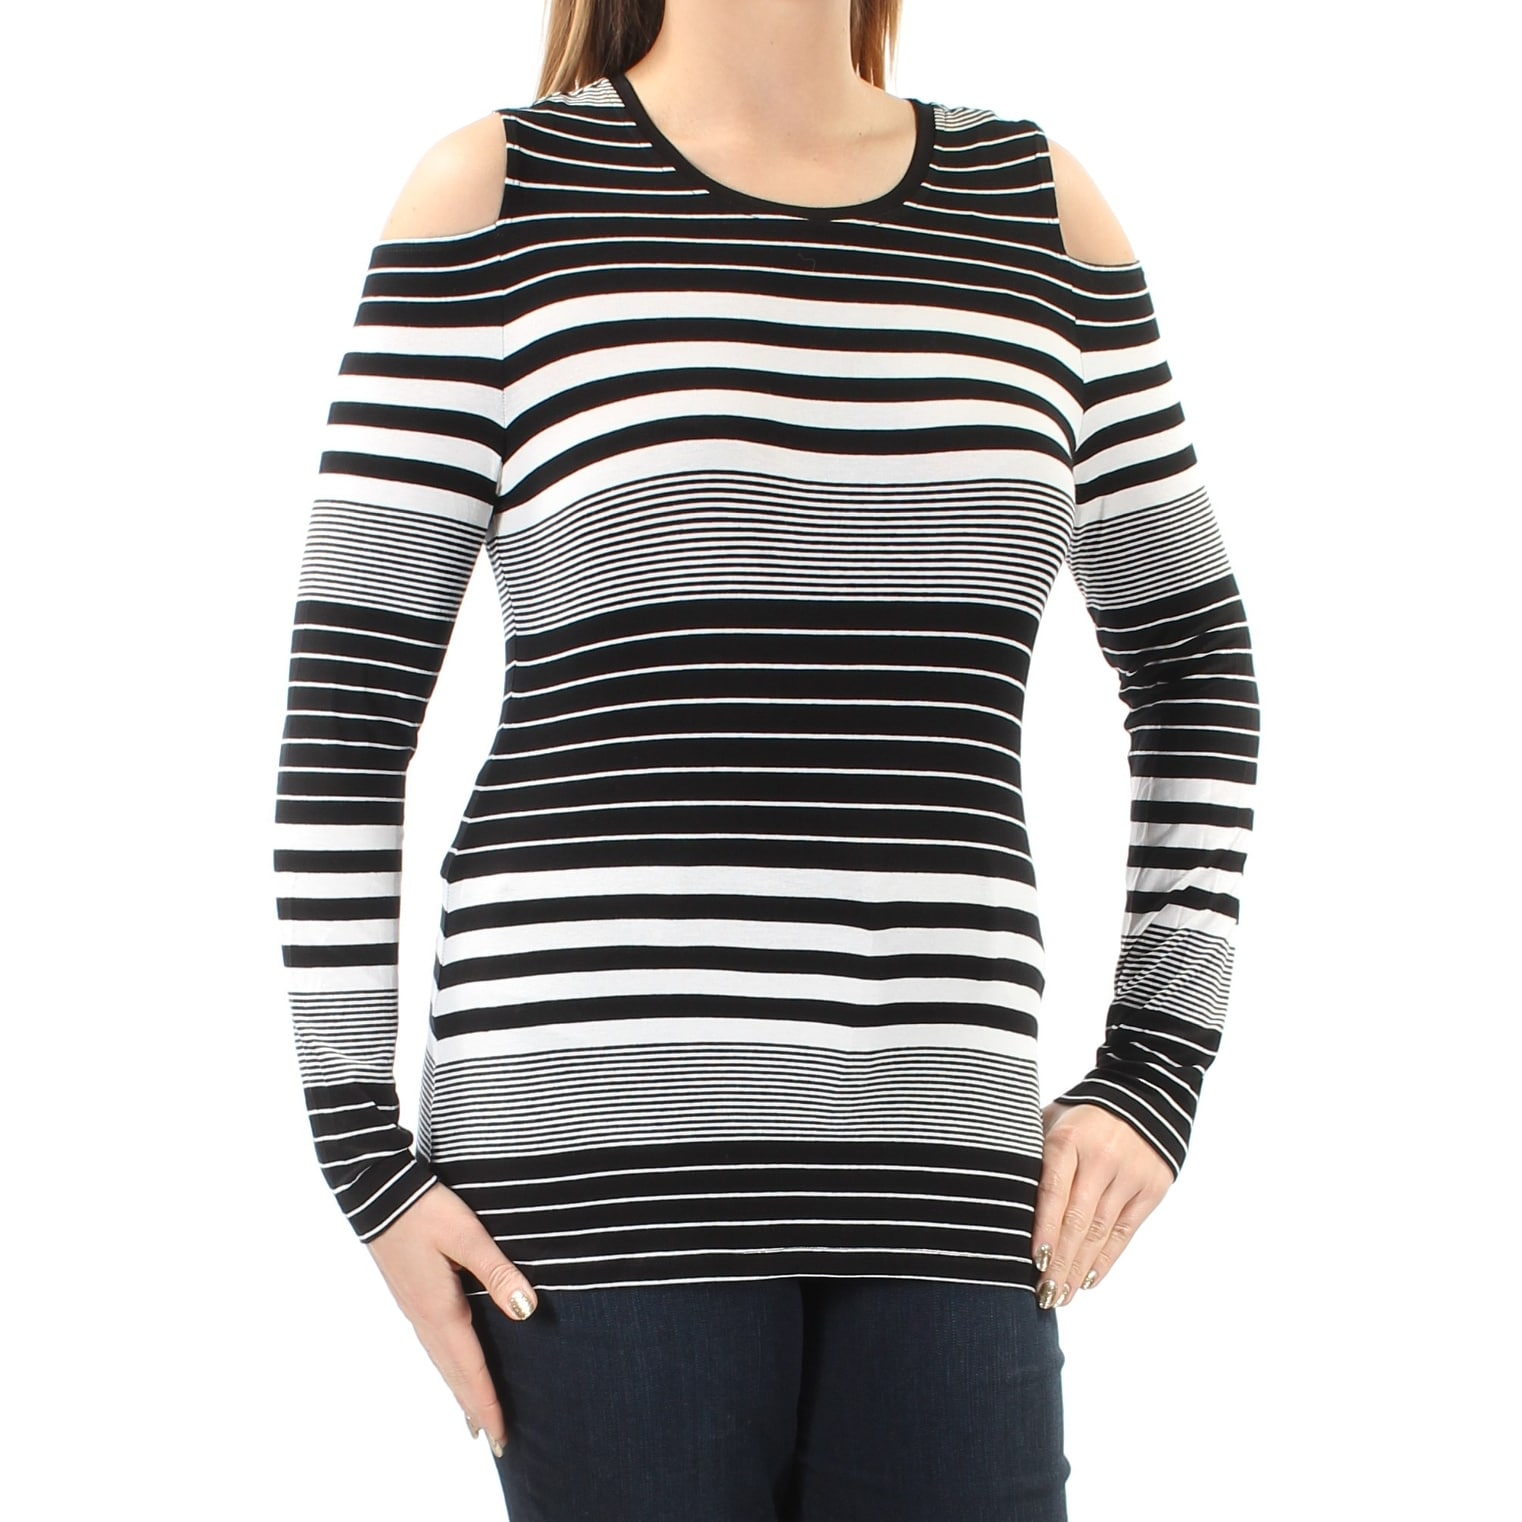 0dfabd87bcd Womens Long Sleeve Black And White Striped Shirt - raveitsafe